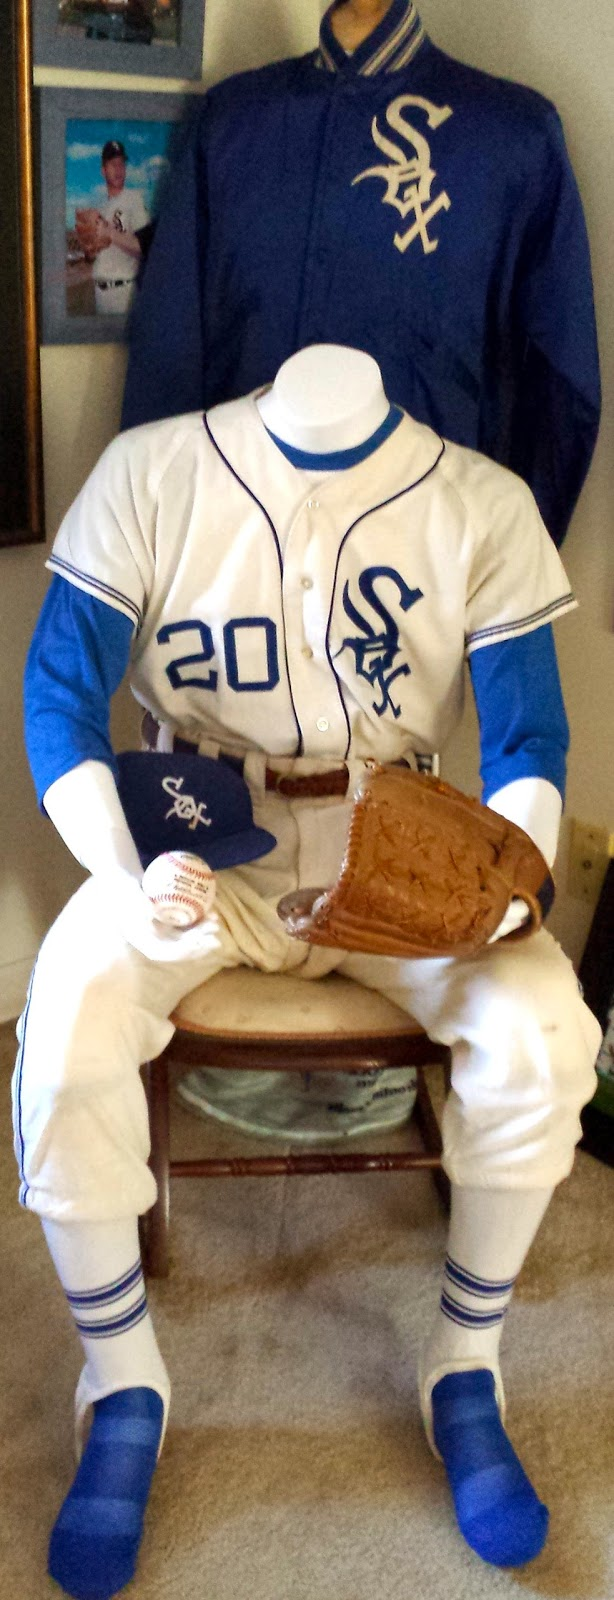 dd392fe6249e2e If you have a jersey, hat, helmet, bat, glove or any game used item from  the '67 period, drop me an email. Thanks for looking.